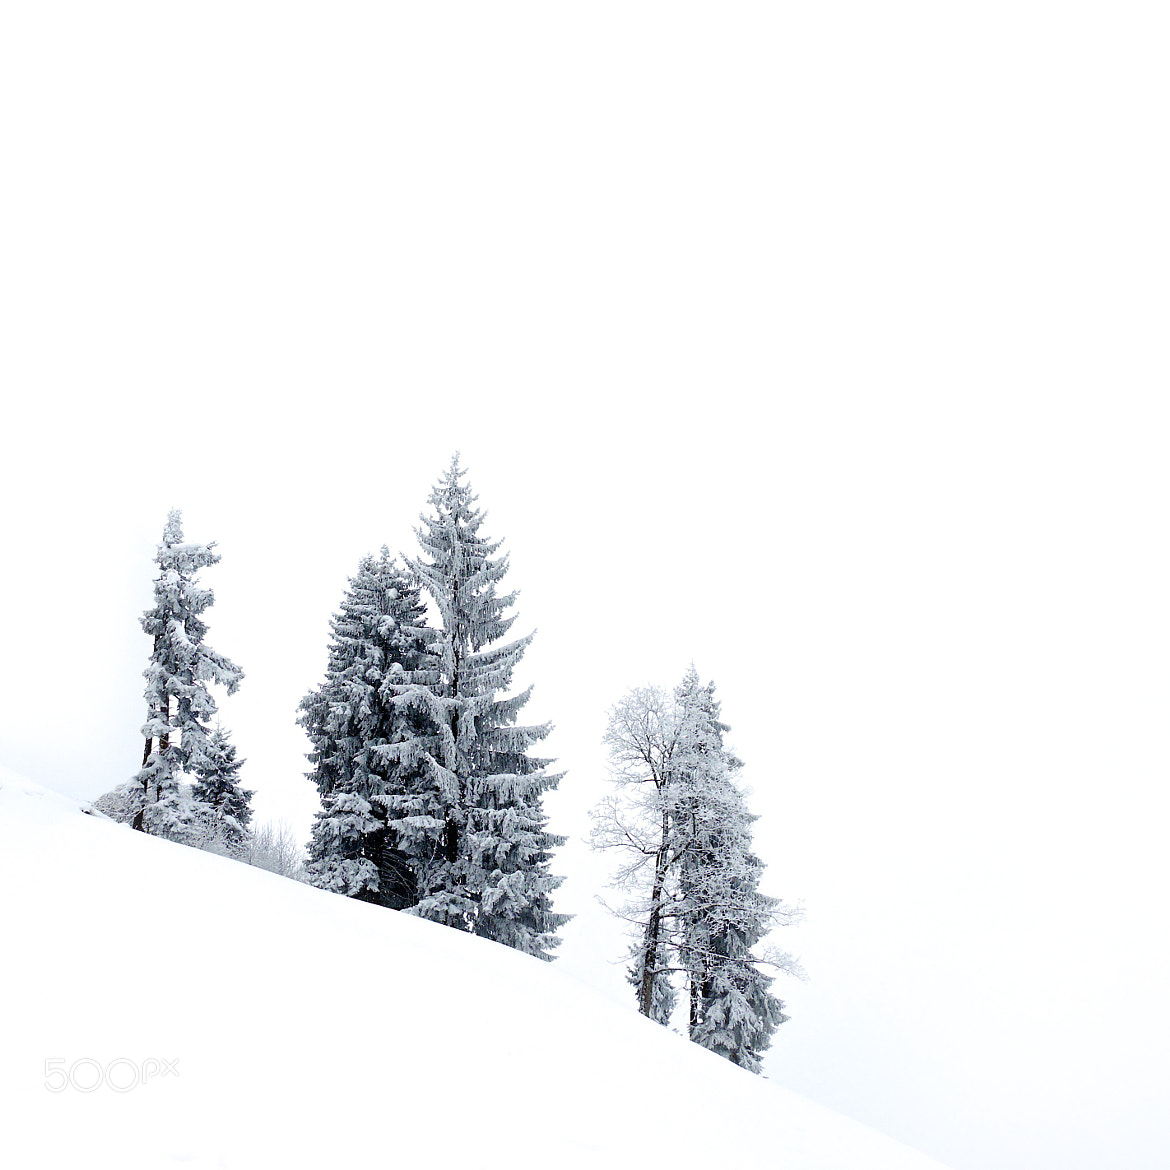 Photograph White Out by Martijn van der Nat on 500px